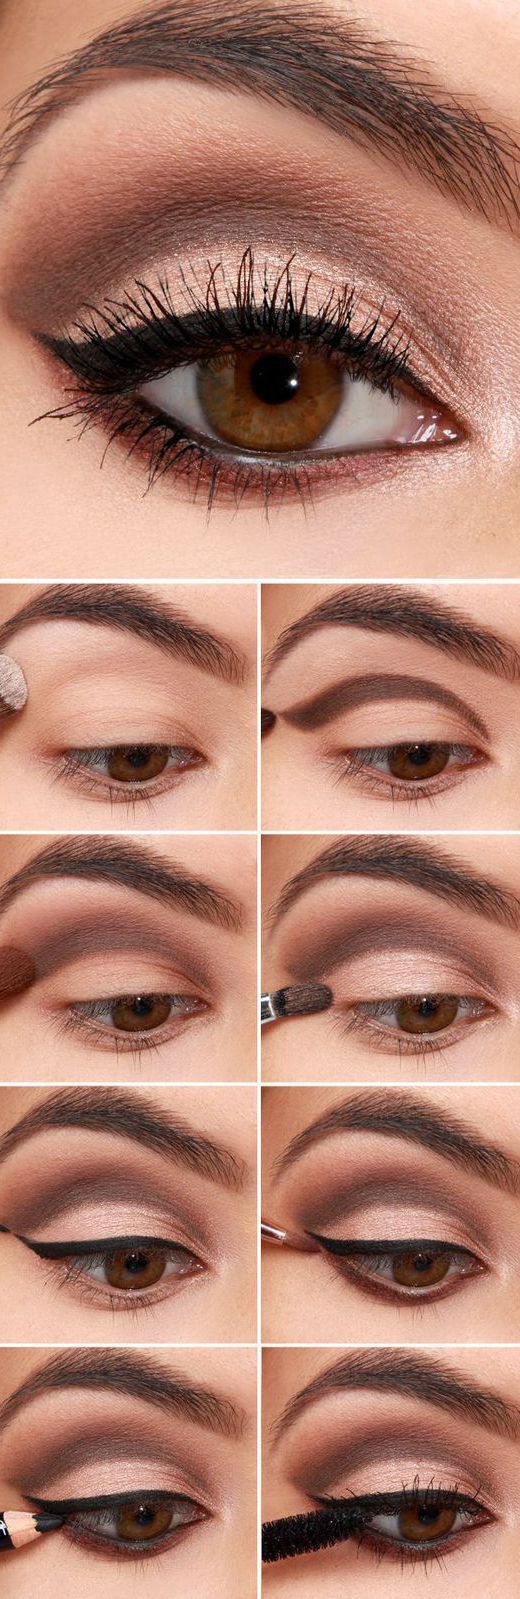 Easy Step-by-Step Eyeiner Tutorial for Beginners: #3. Easy Eyeliner Tutorials for Beginners – Brown Cut Crease with Eyeliner